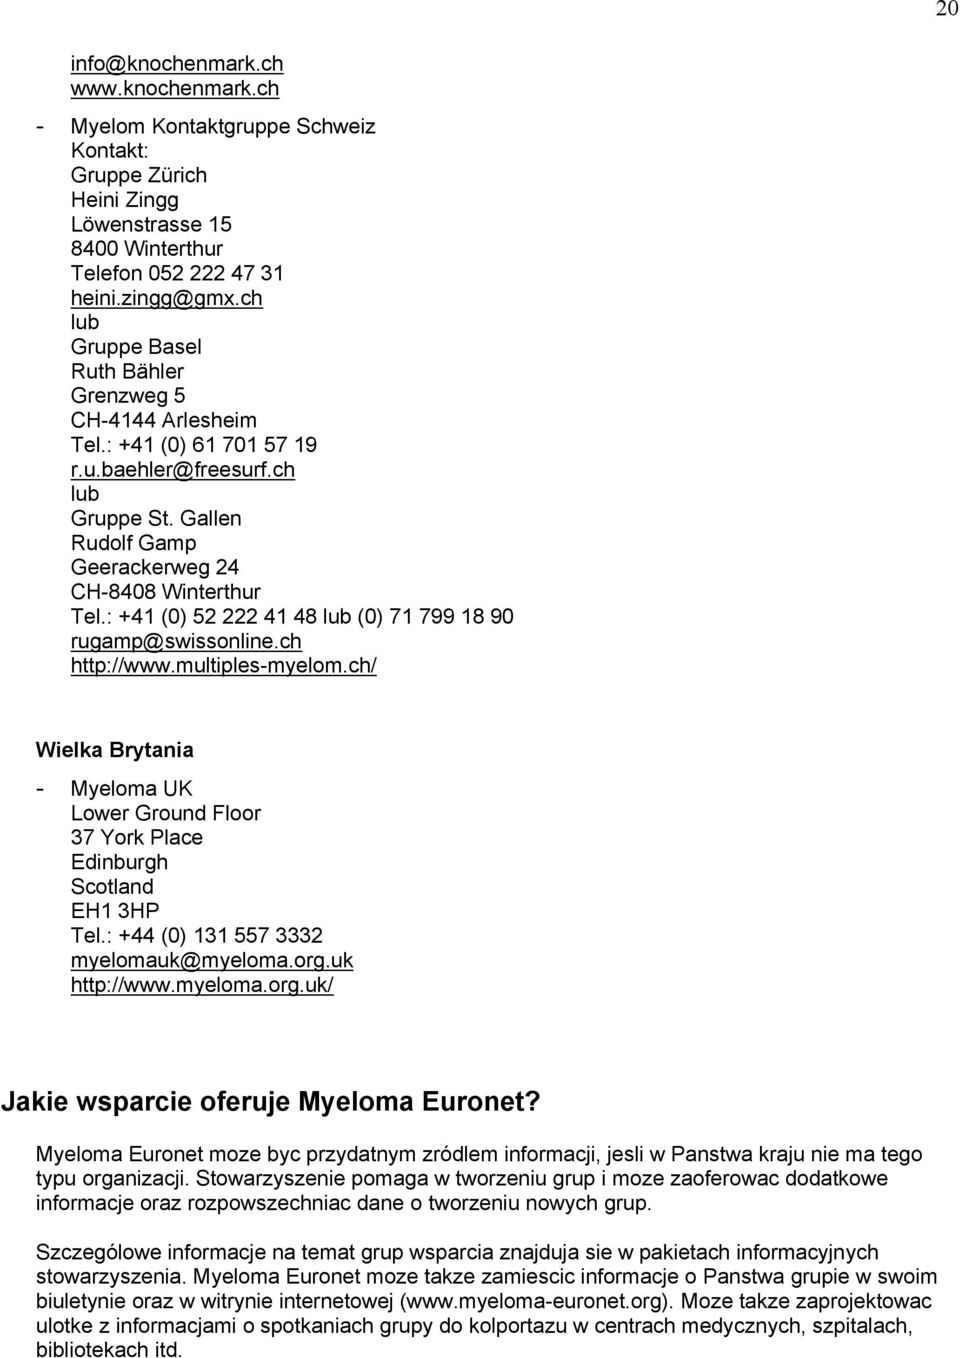 : +41 (0) 52 222 41 48 lub (0) 71 799 18 90 rugamp@swissonline.ch http://www.multiples-myelom.ch/ Wielka Brytania - Myeloma UK Lower Ground Floor 37 York Place Edinburgh Scotland EH1 3HP Tel.